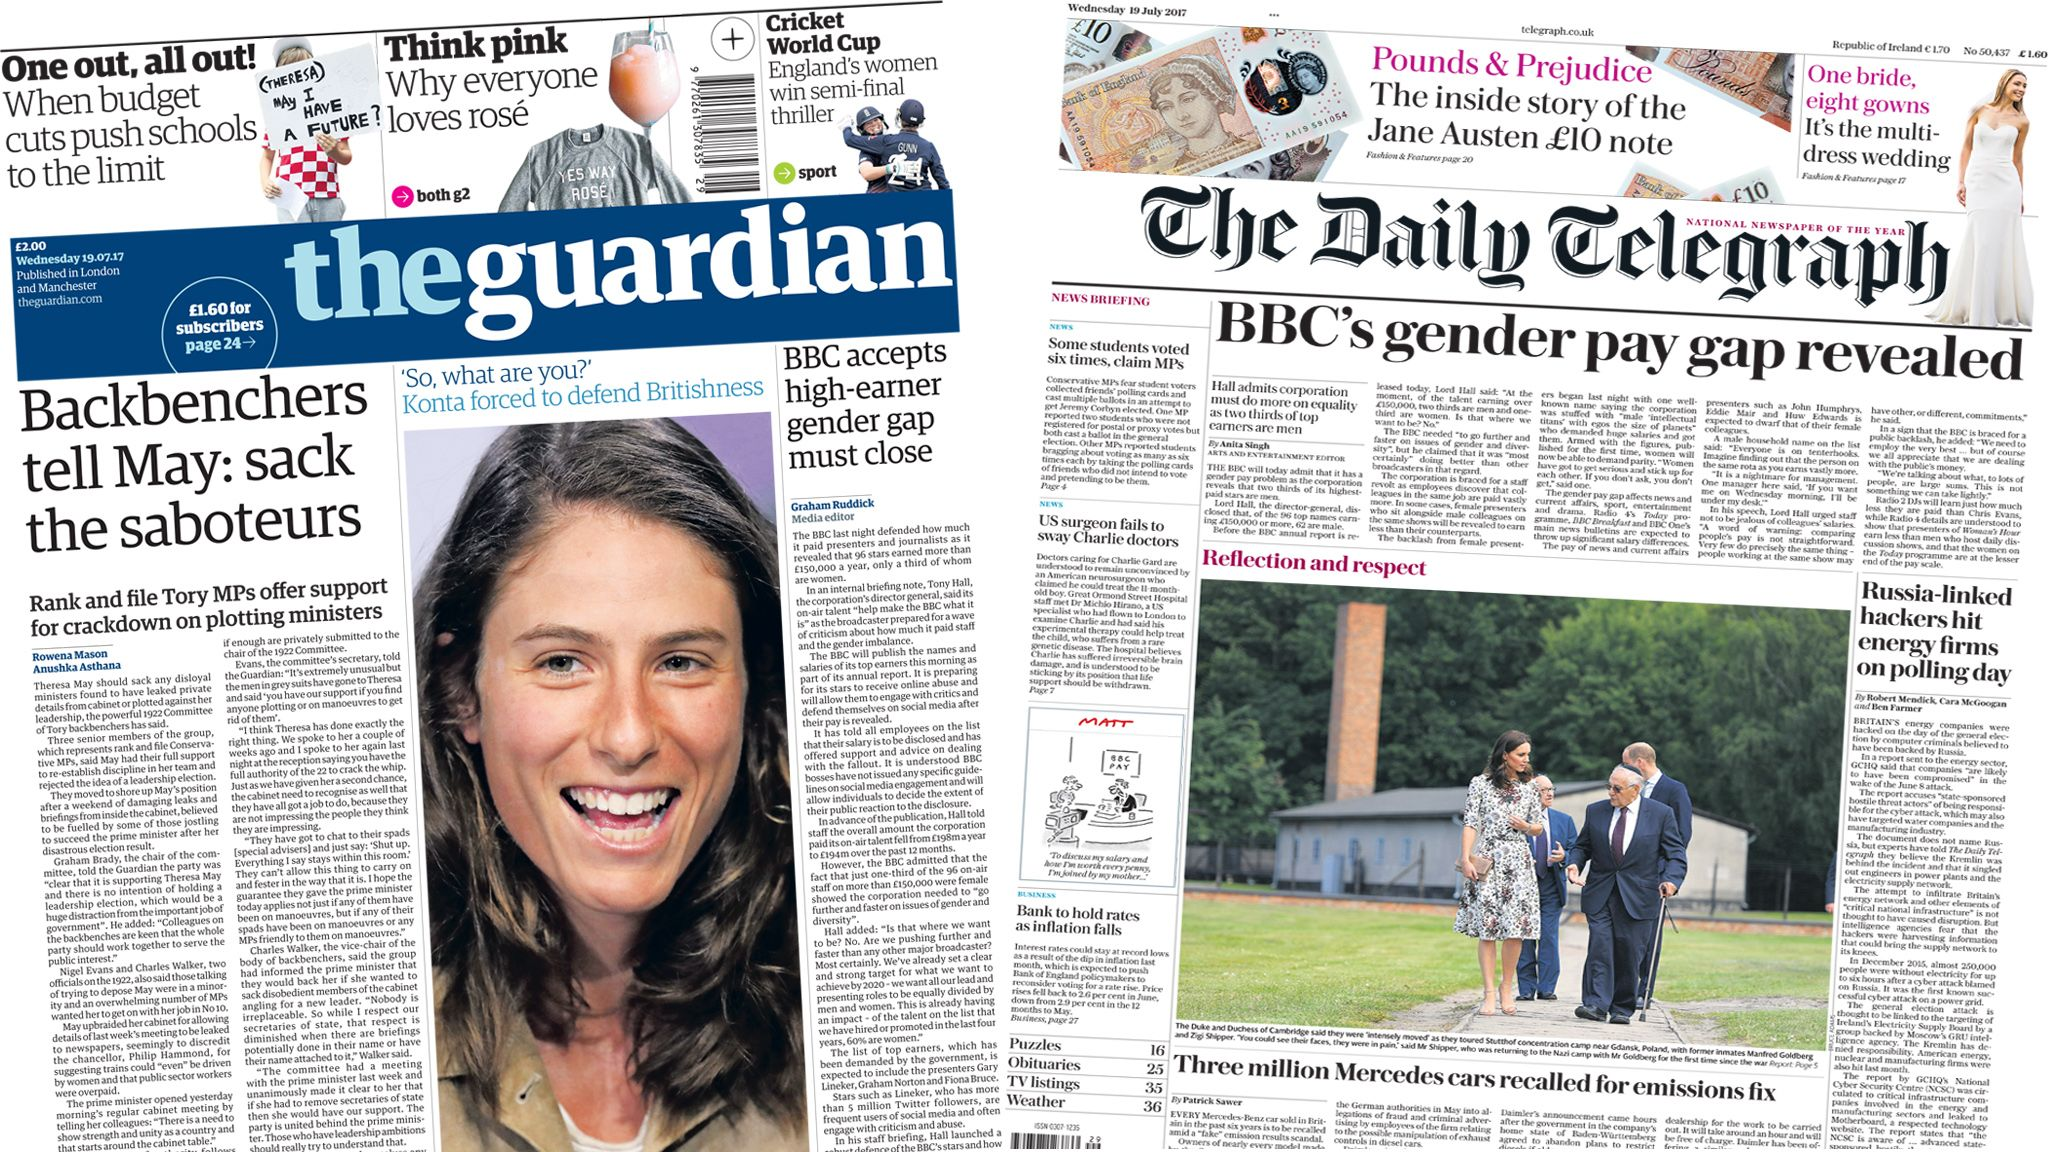 Guardian/Telegraph front pages